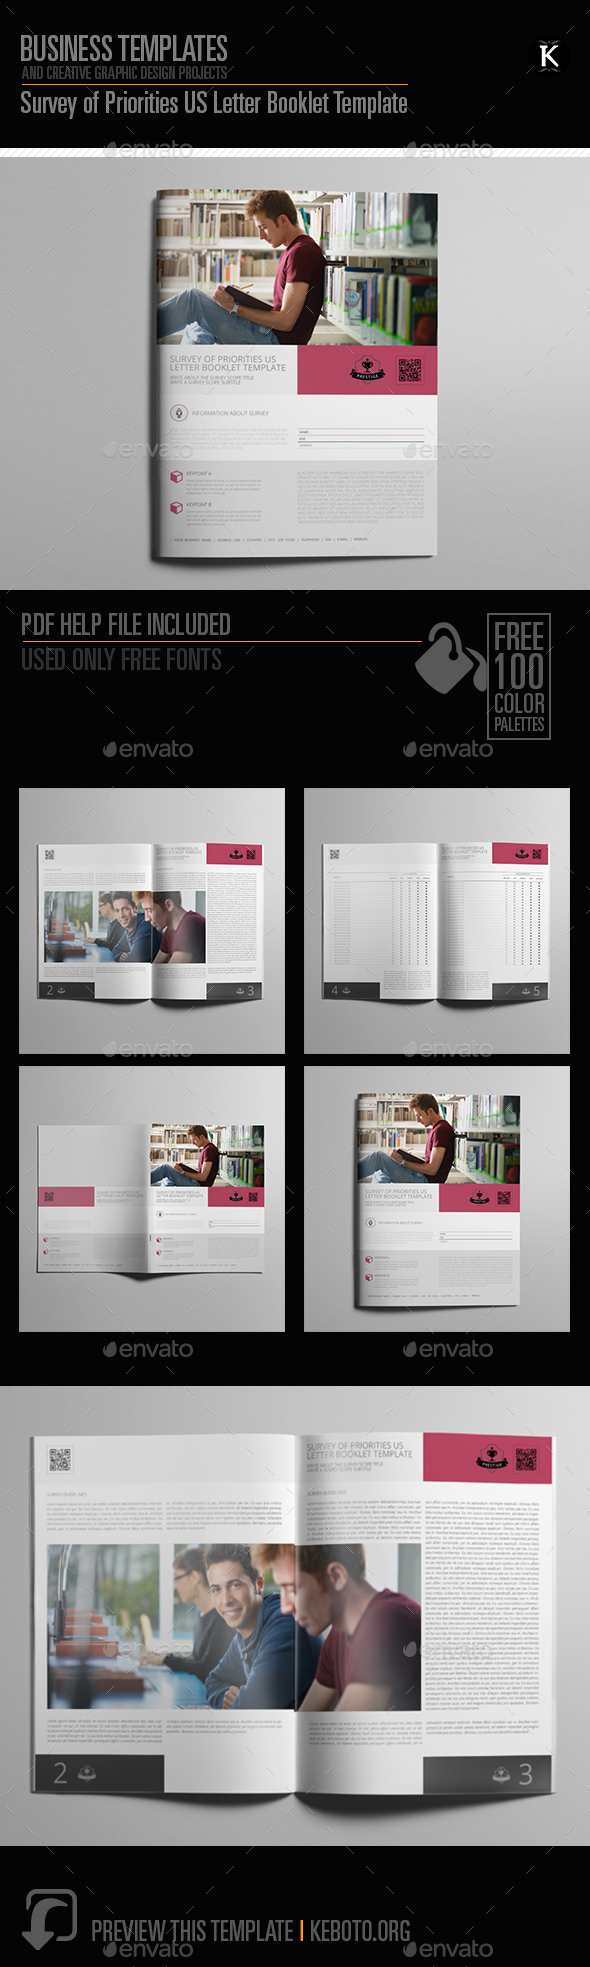 Survey of Priorities US Letter Booklet Template - Miscellaneous Print Templates